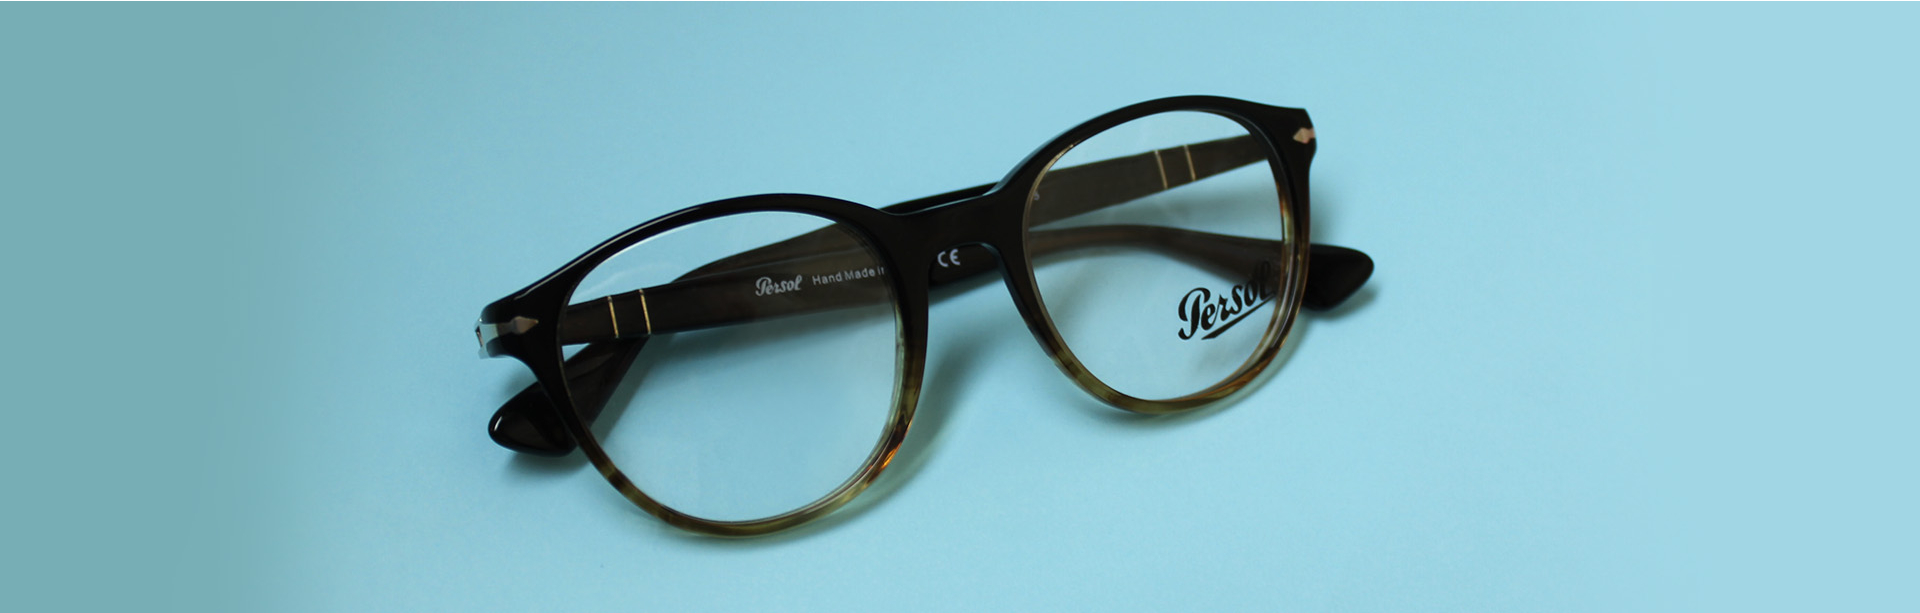 Persol 3153v Glasses bottom banner in Focus Blog | EyeWearThese.com